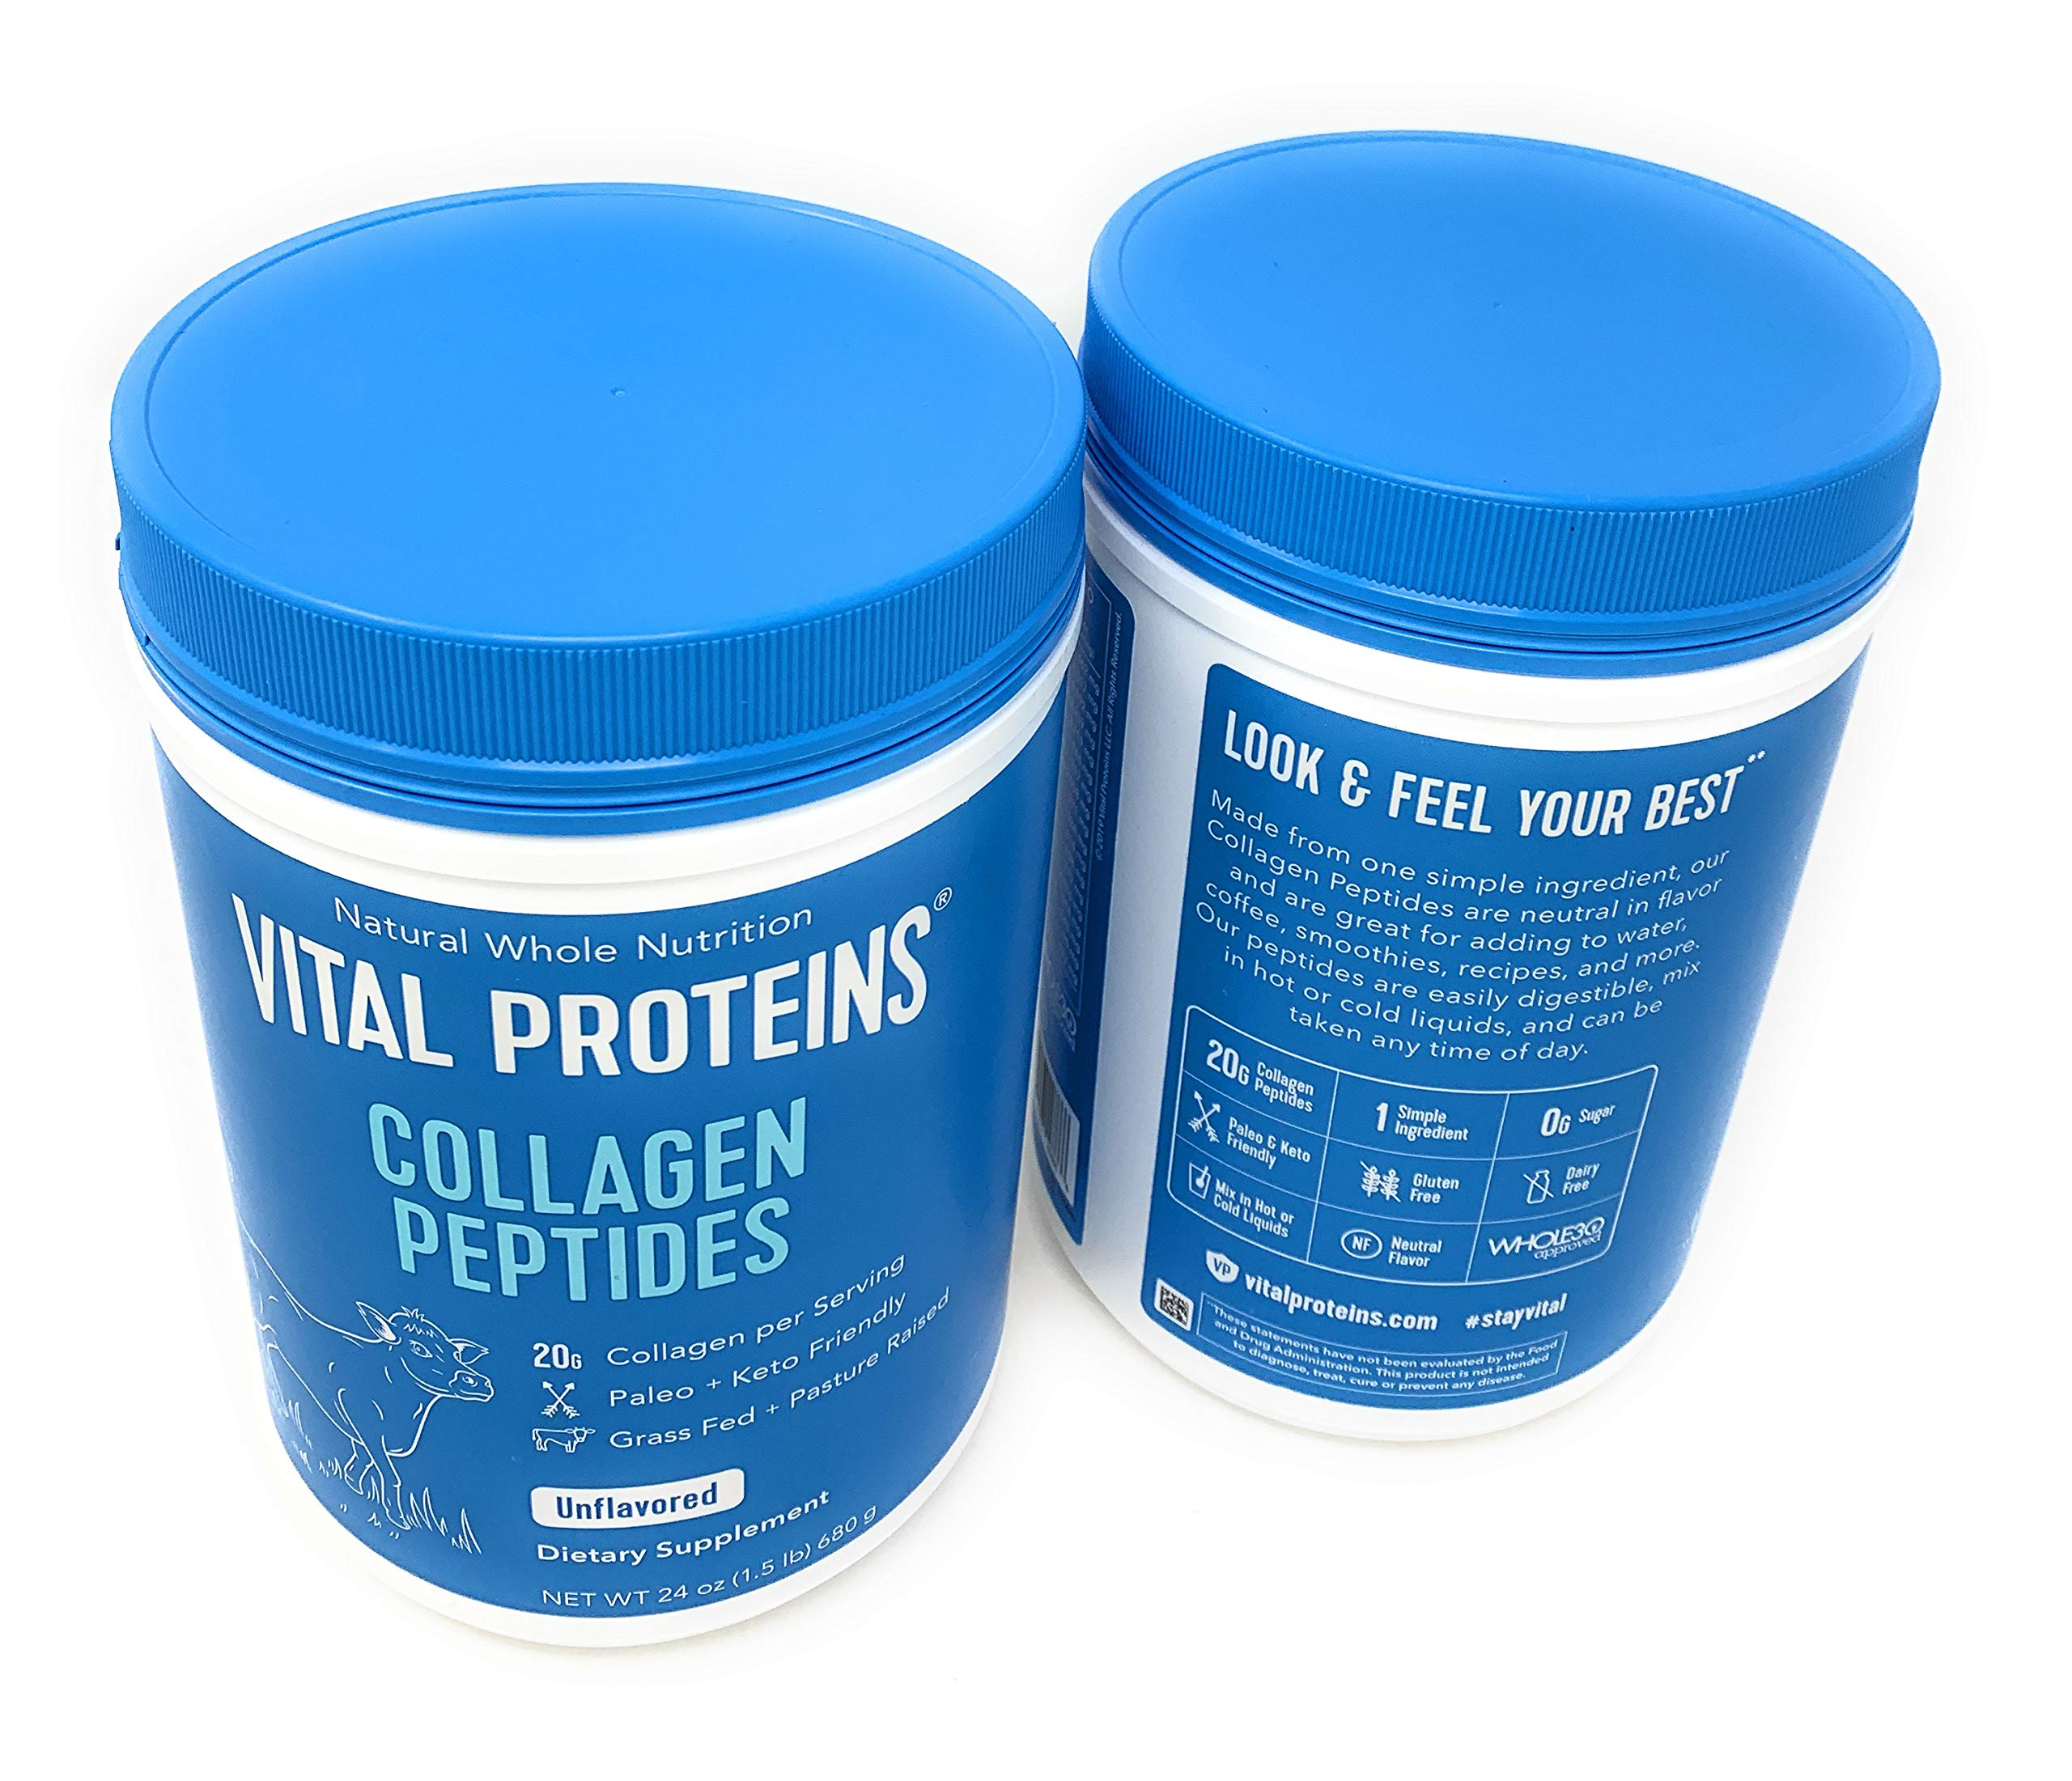 Vital Proteins Collagen Peptides - Pasture Raised, Grass Fed, Paleo Friendly, Gluten Free, Single Ingredient (20 oz, 2 Pack) by Vital Proteins (Image #1)